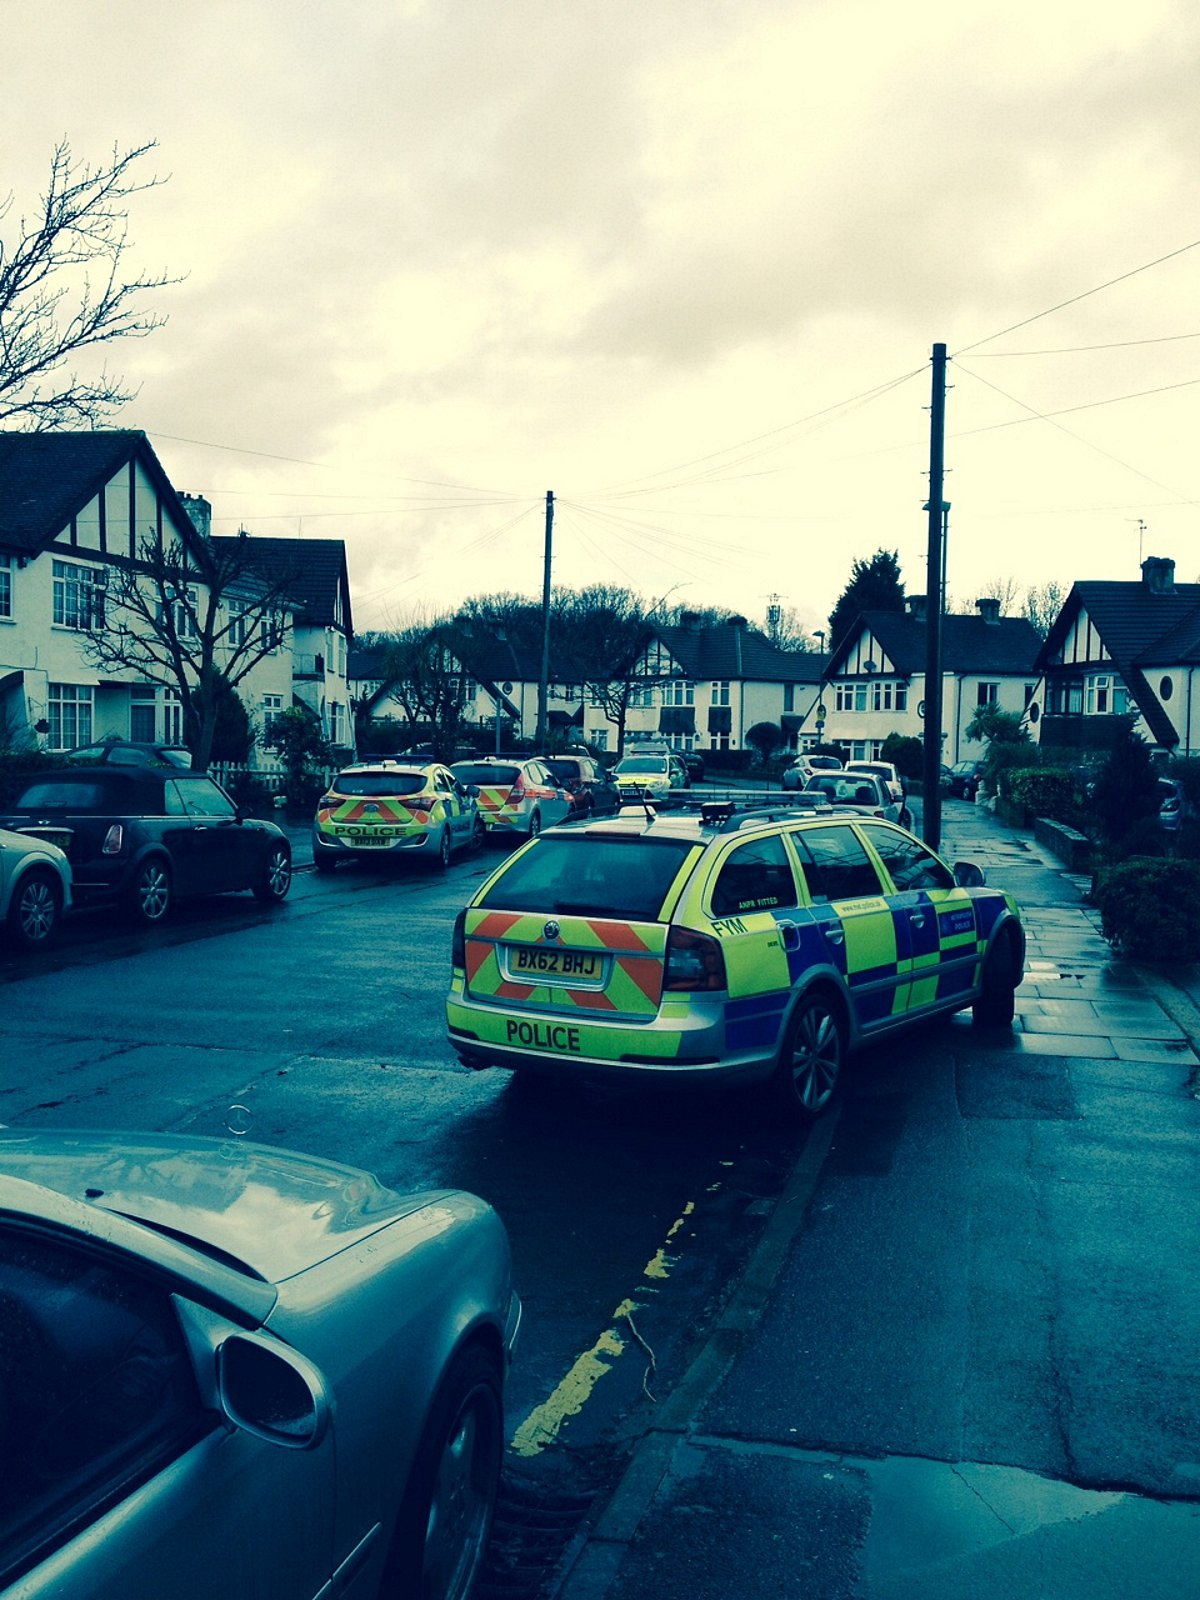 UPDATE: Police cars storm into road in Petts Wood